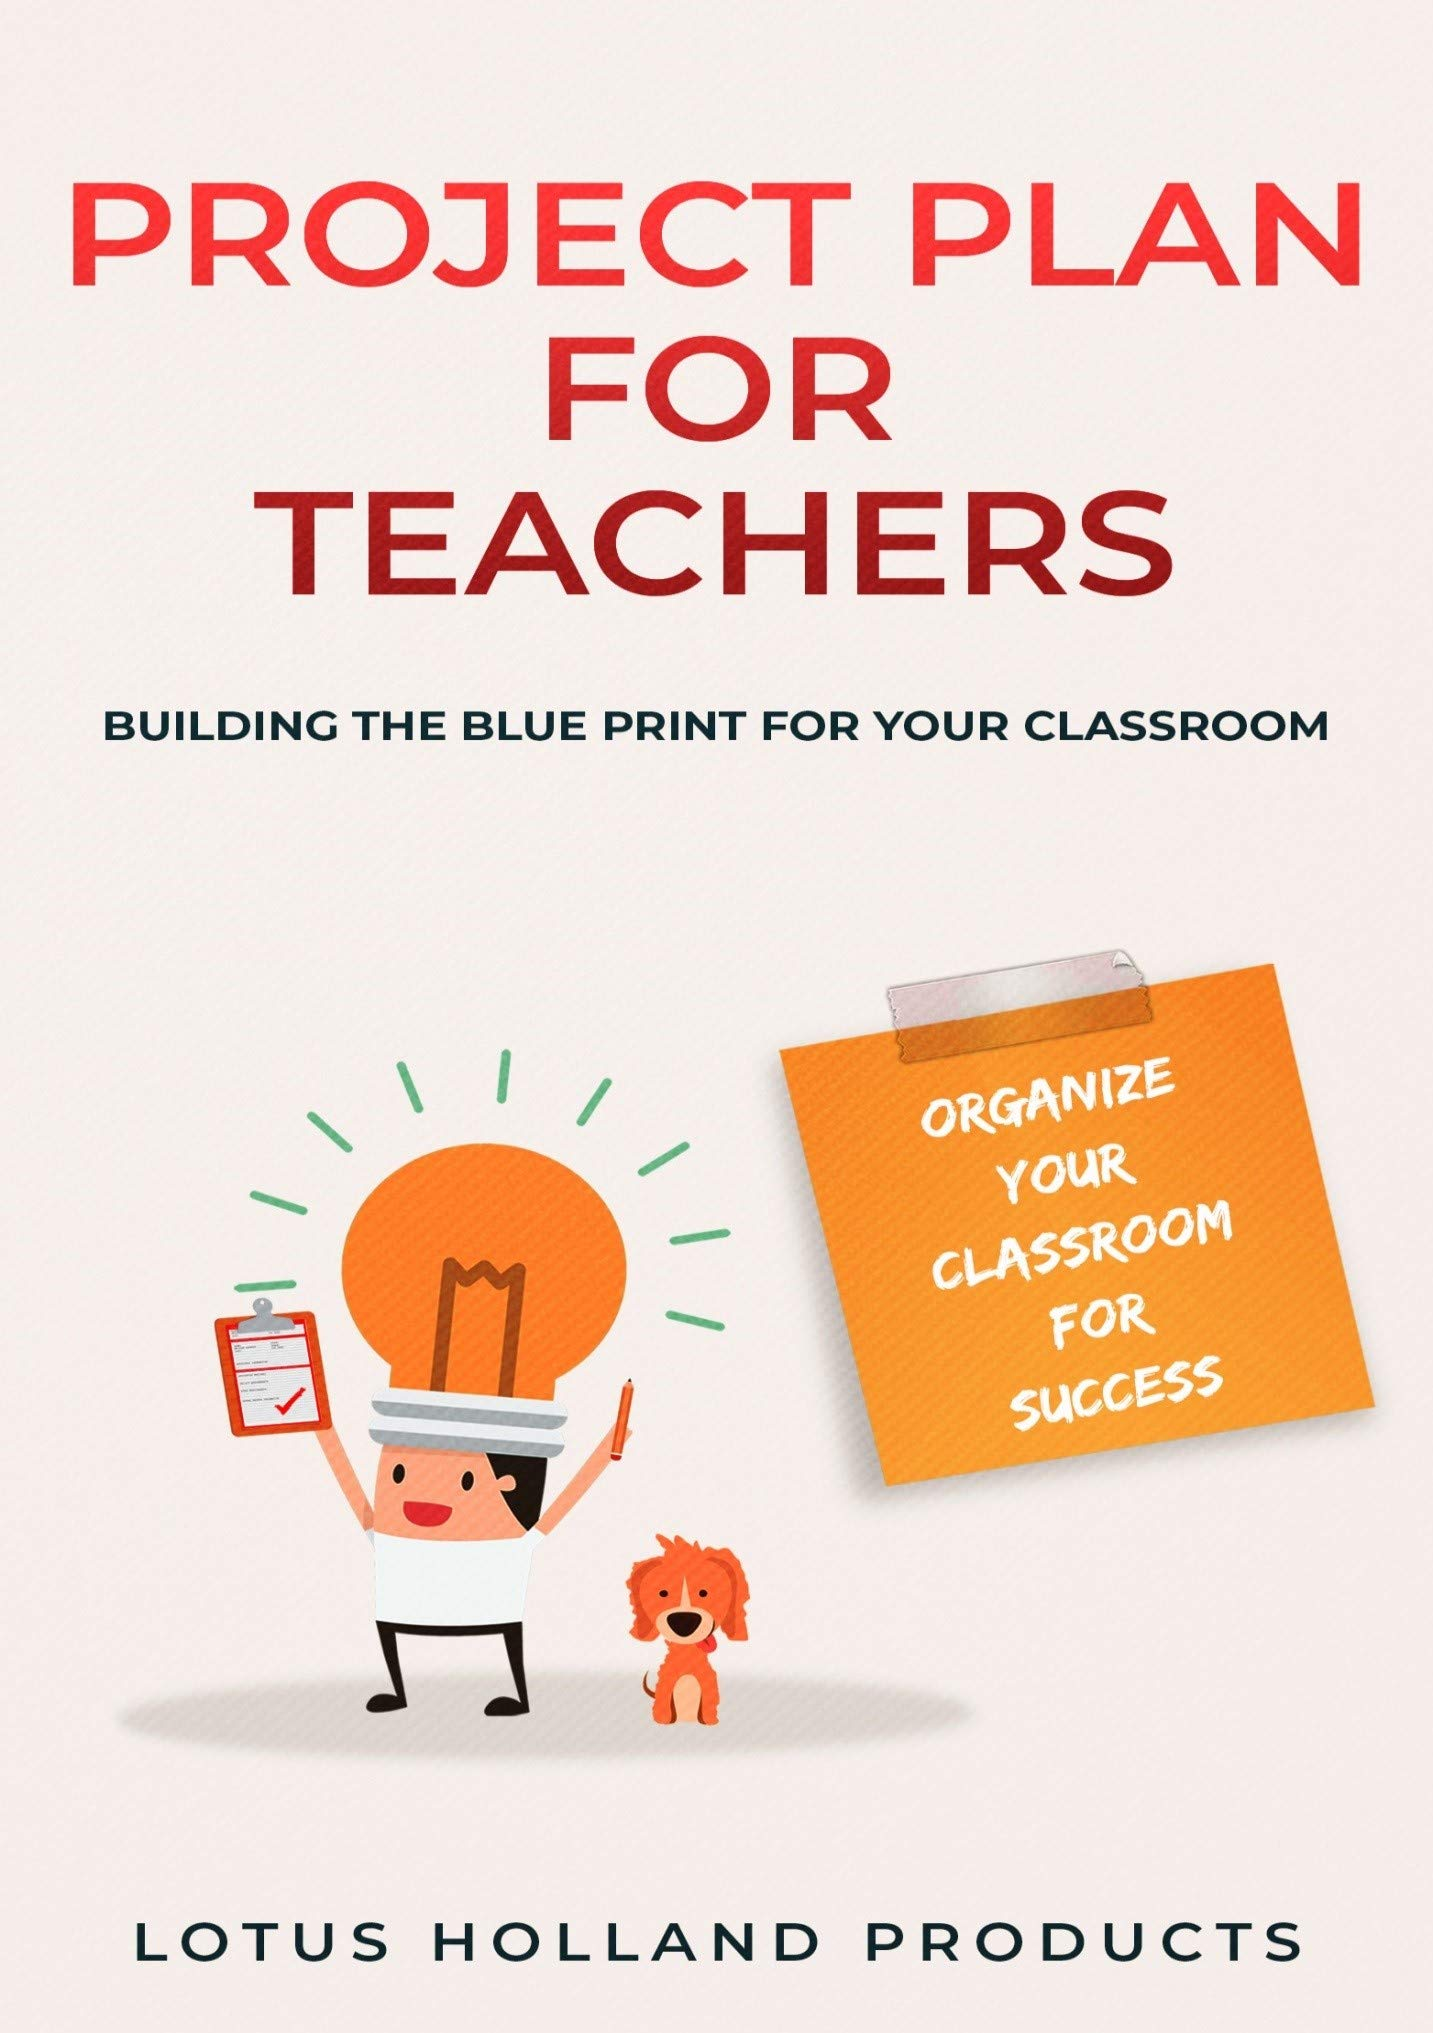 Project Plan for Teachers: Organize Your Classroom for